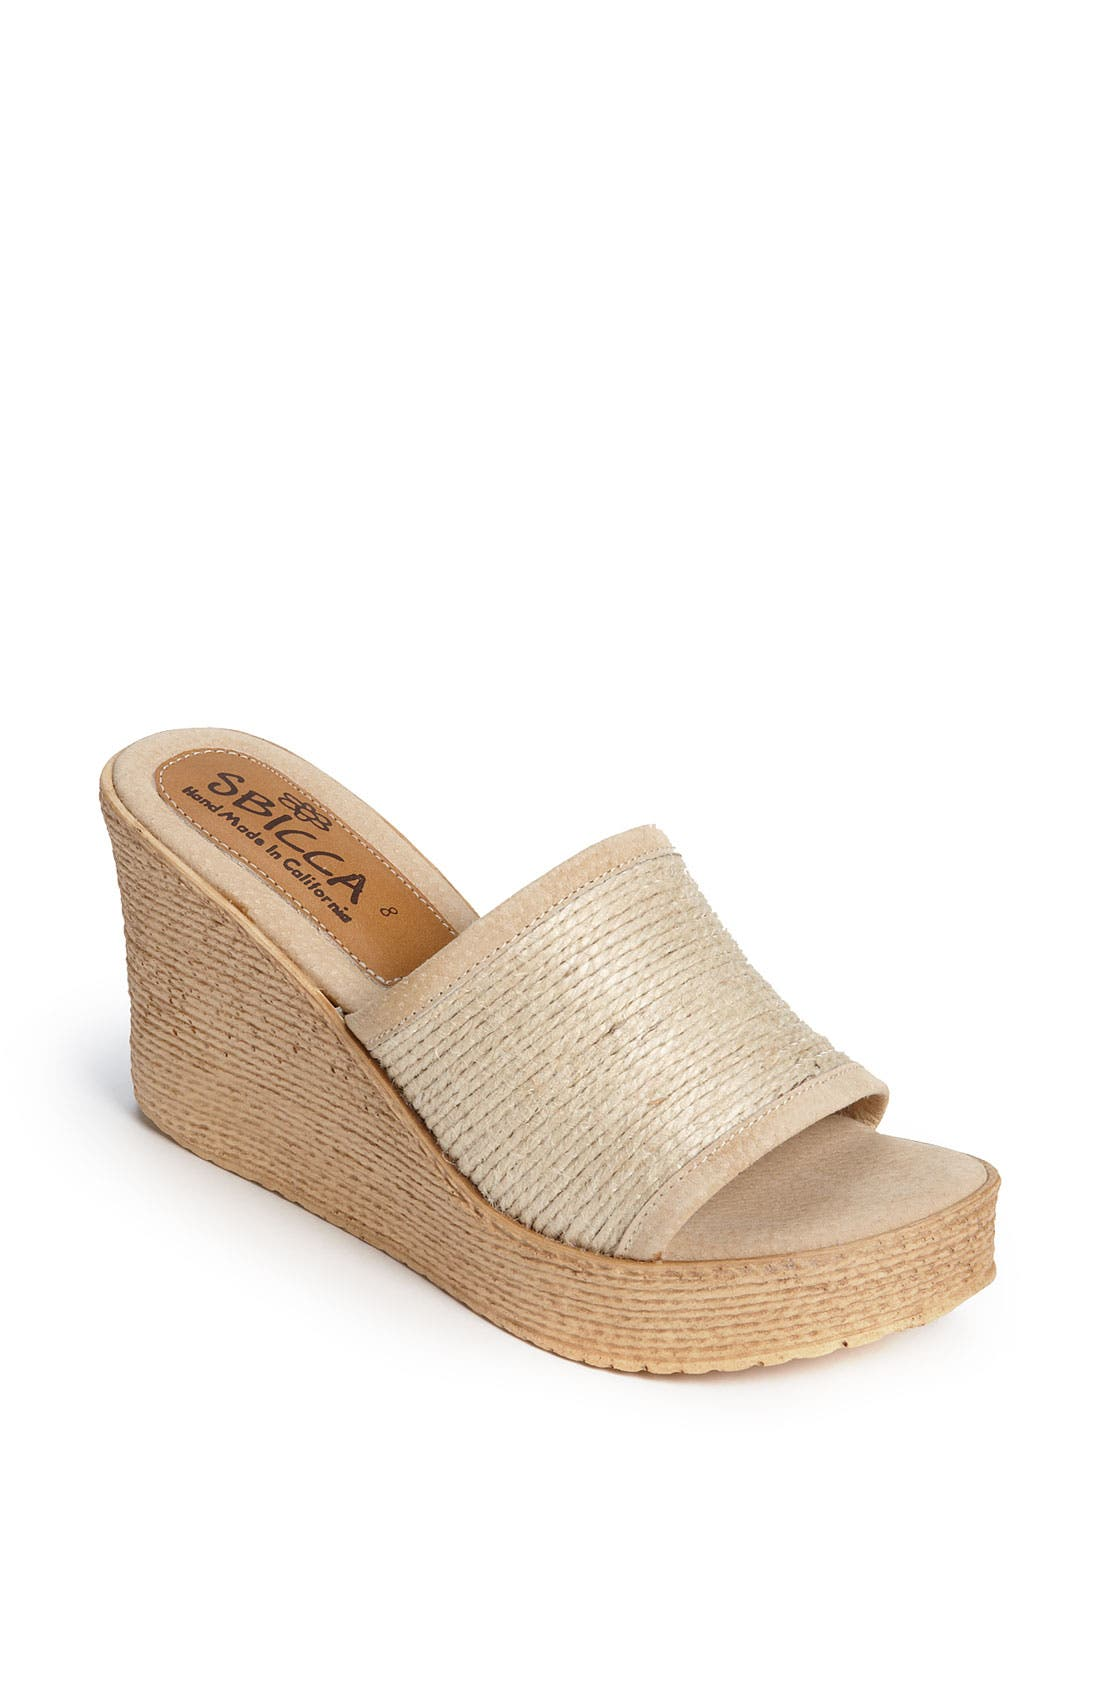 Alternate Image 1 Selected - Sbicca 'Blondie' Sandal